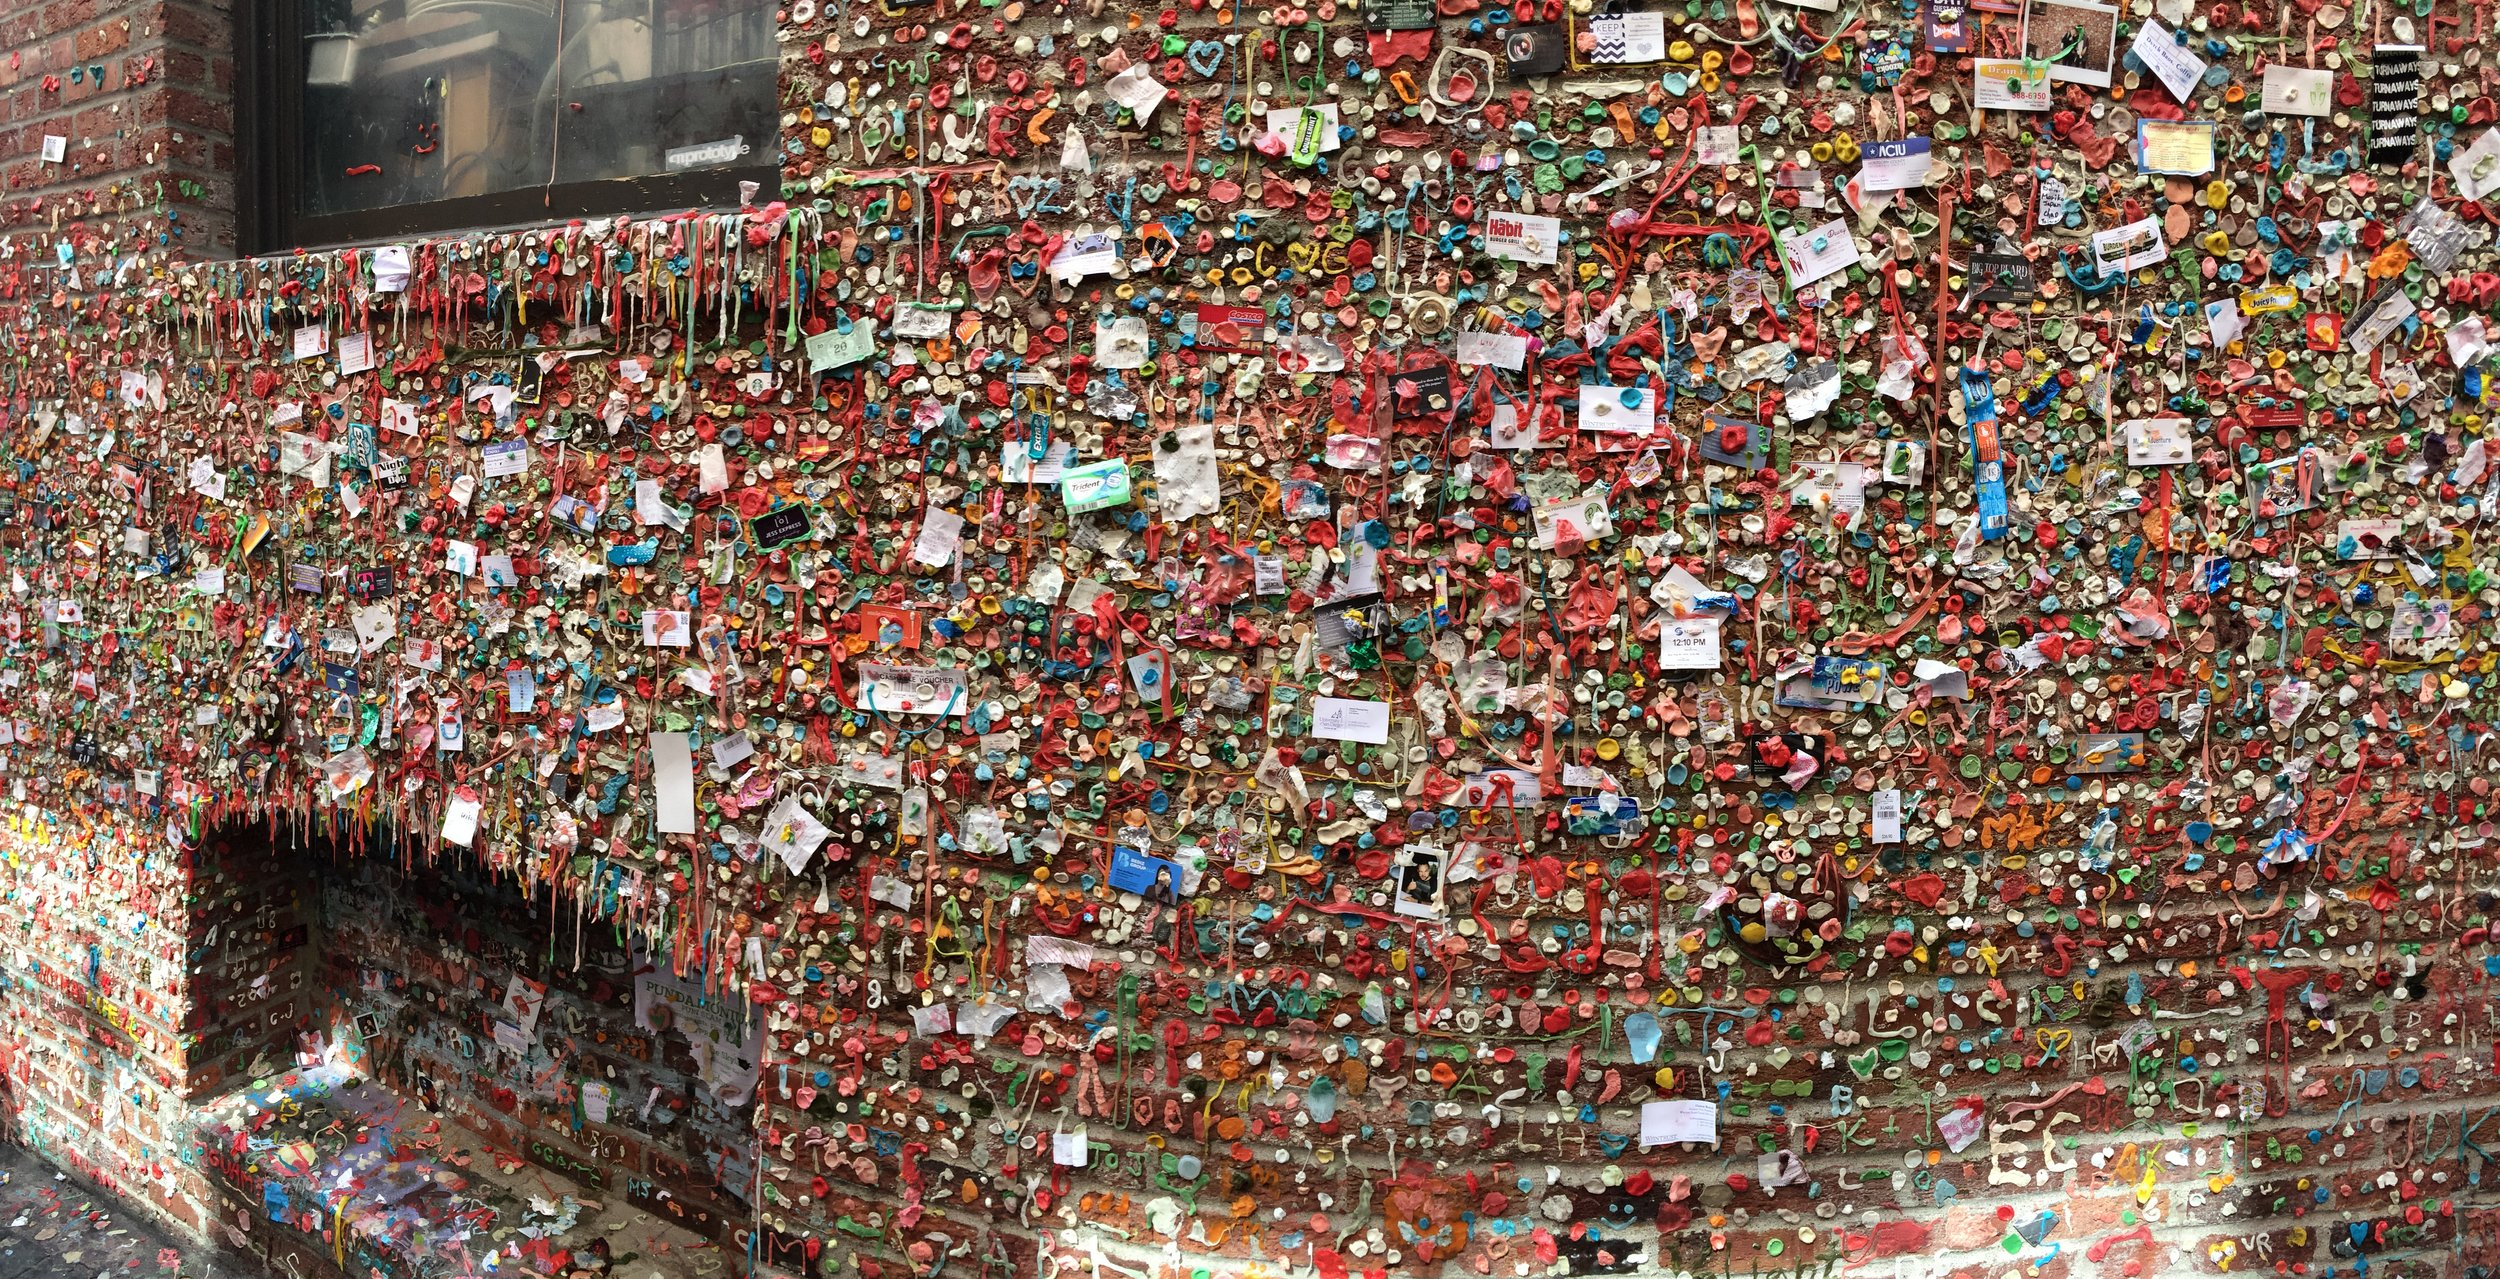 Despite being cleaned in 2015....the Gum Wall lives on in a new form.